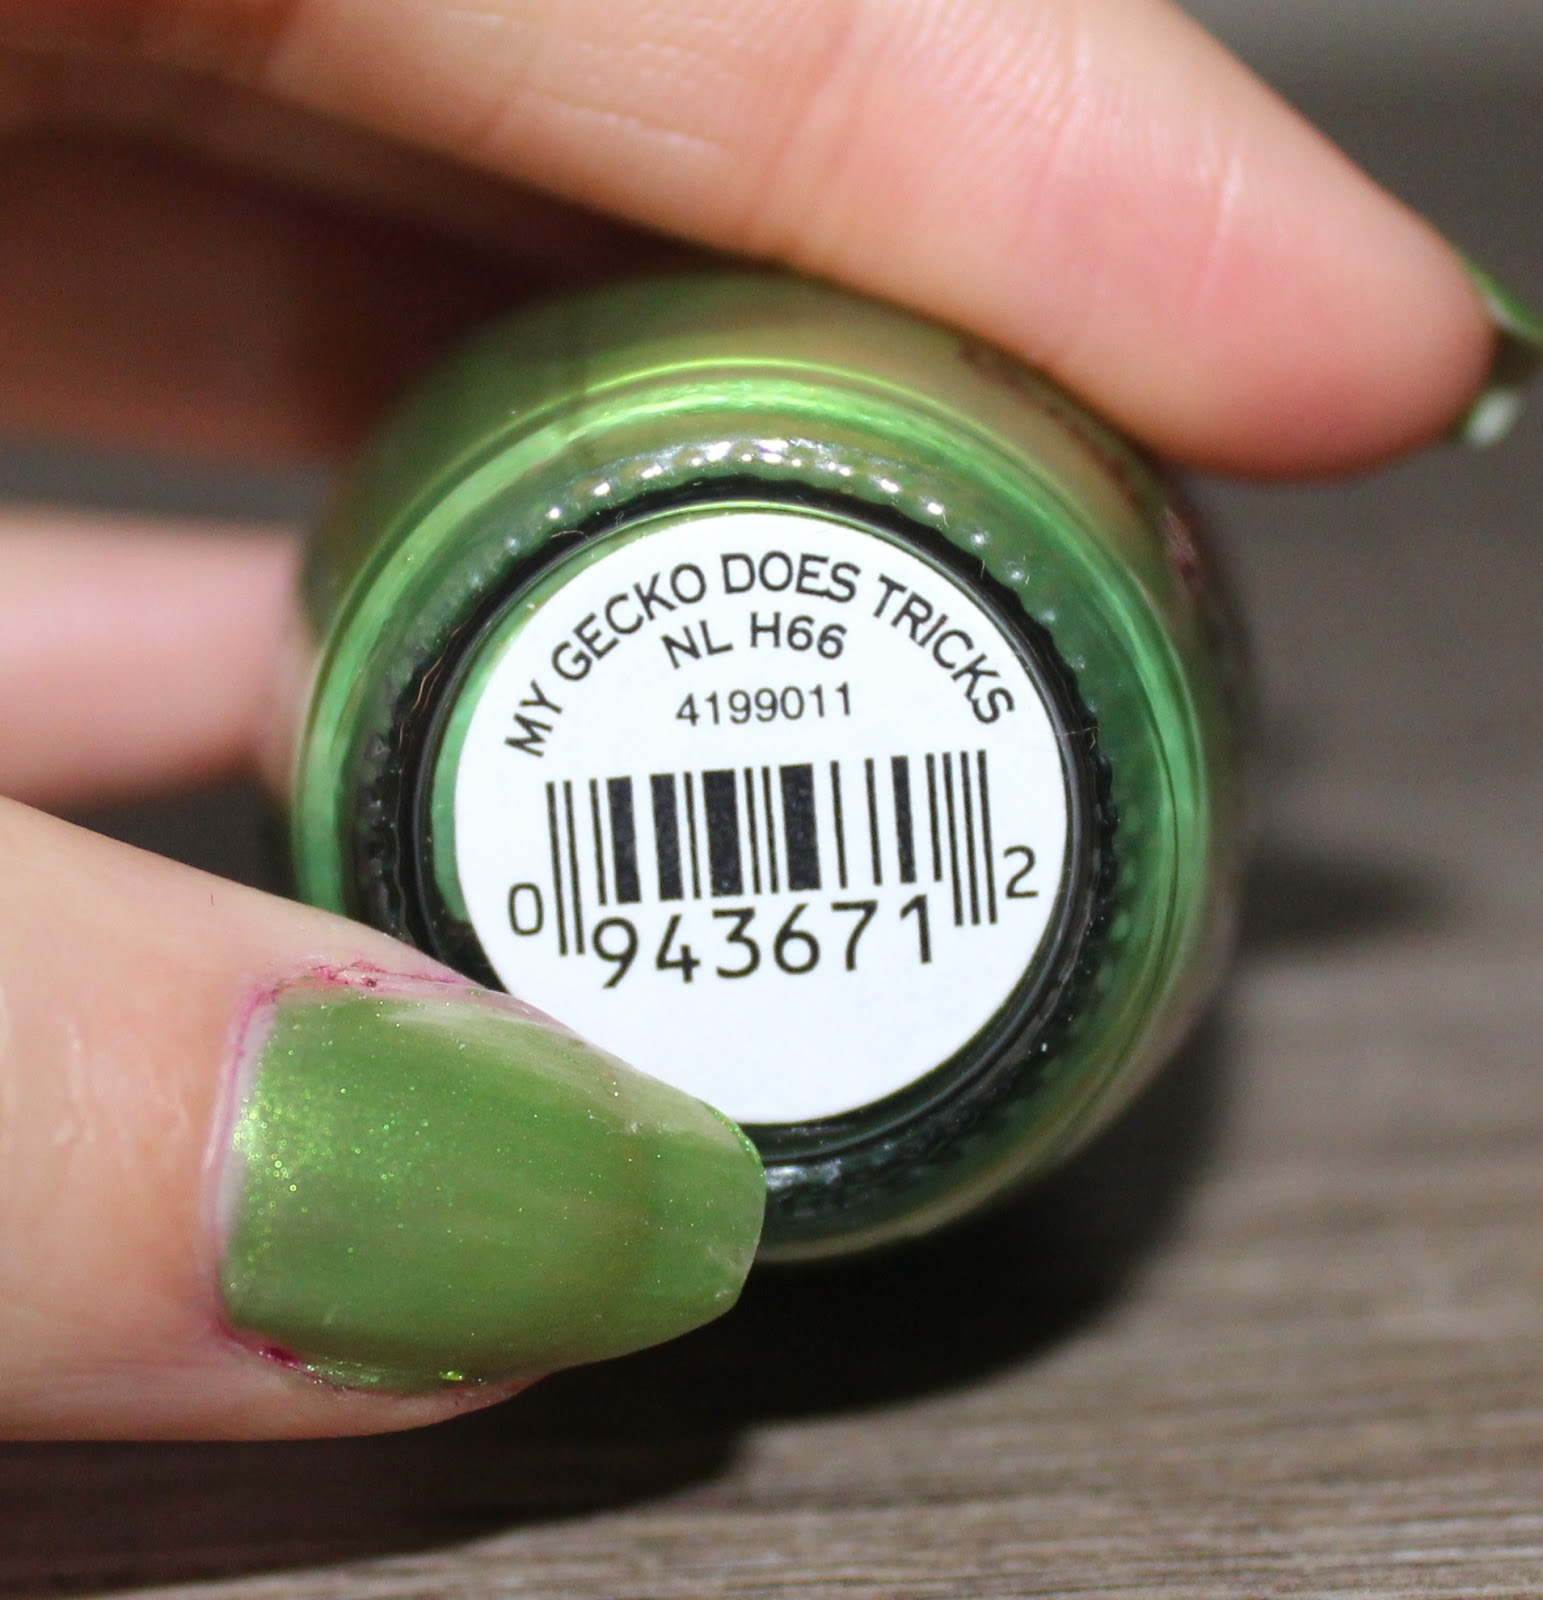 OPI My Gecko Does Tricks Swatch